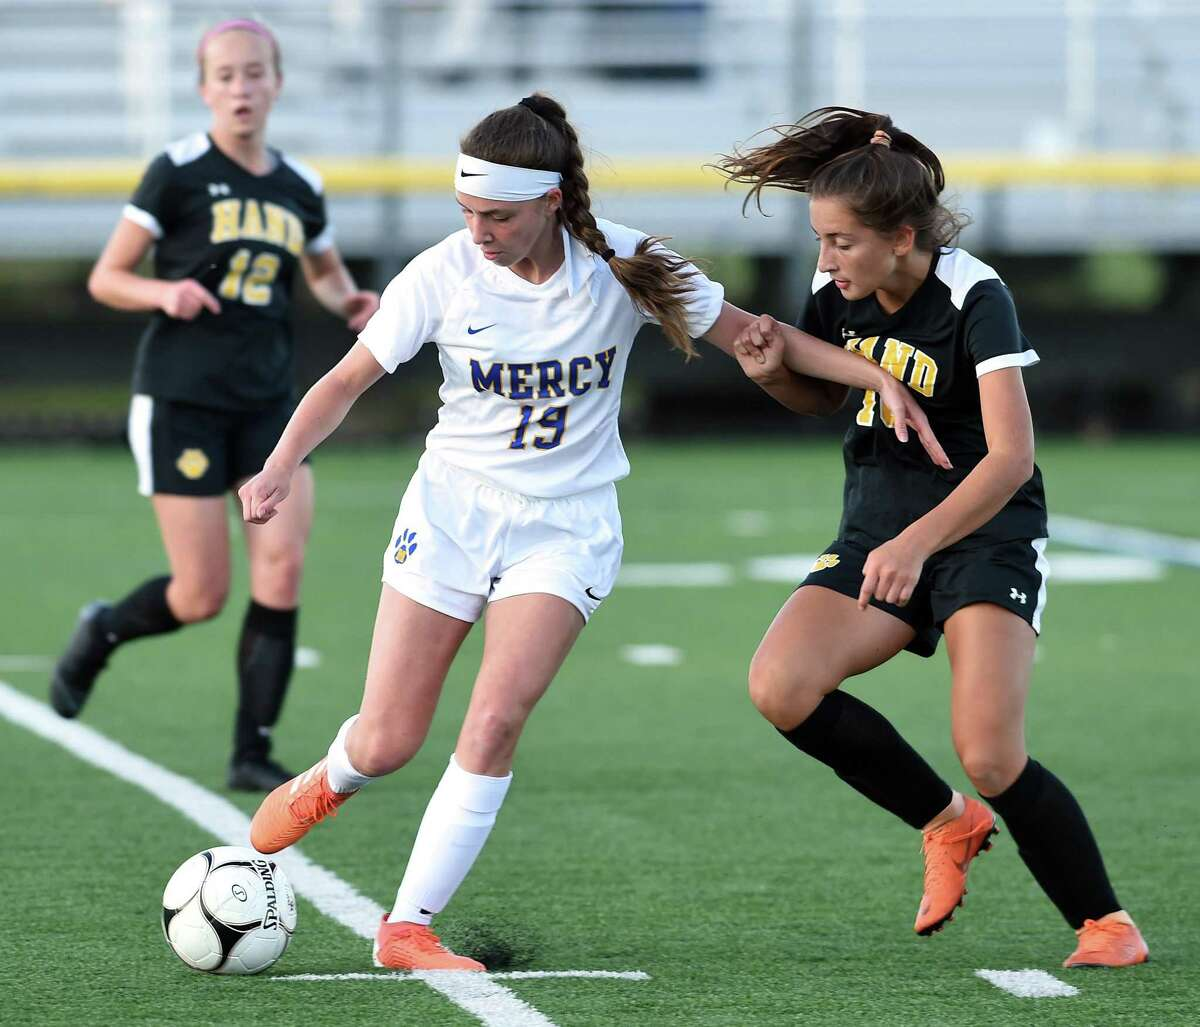 Mercy's Kaila Lujambio, left, had a hat trick in a win over North Haven last week.